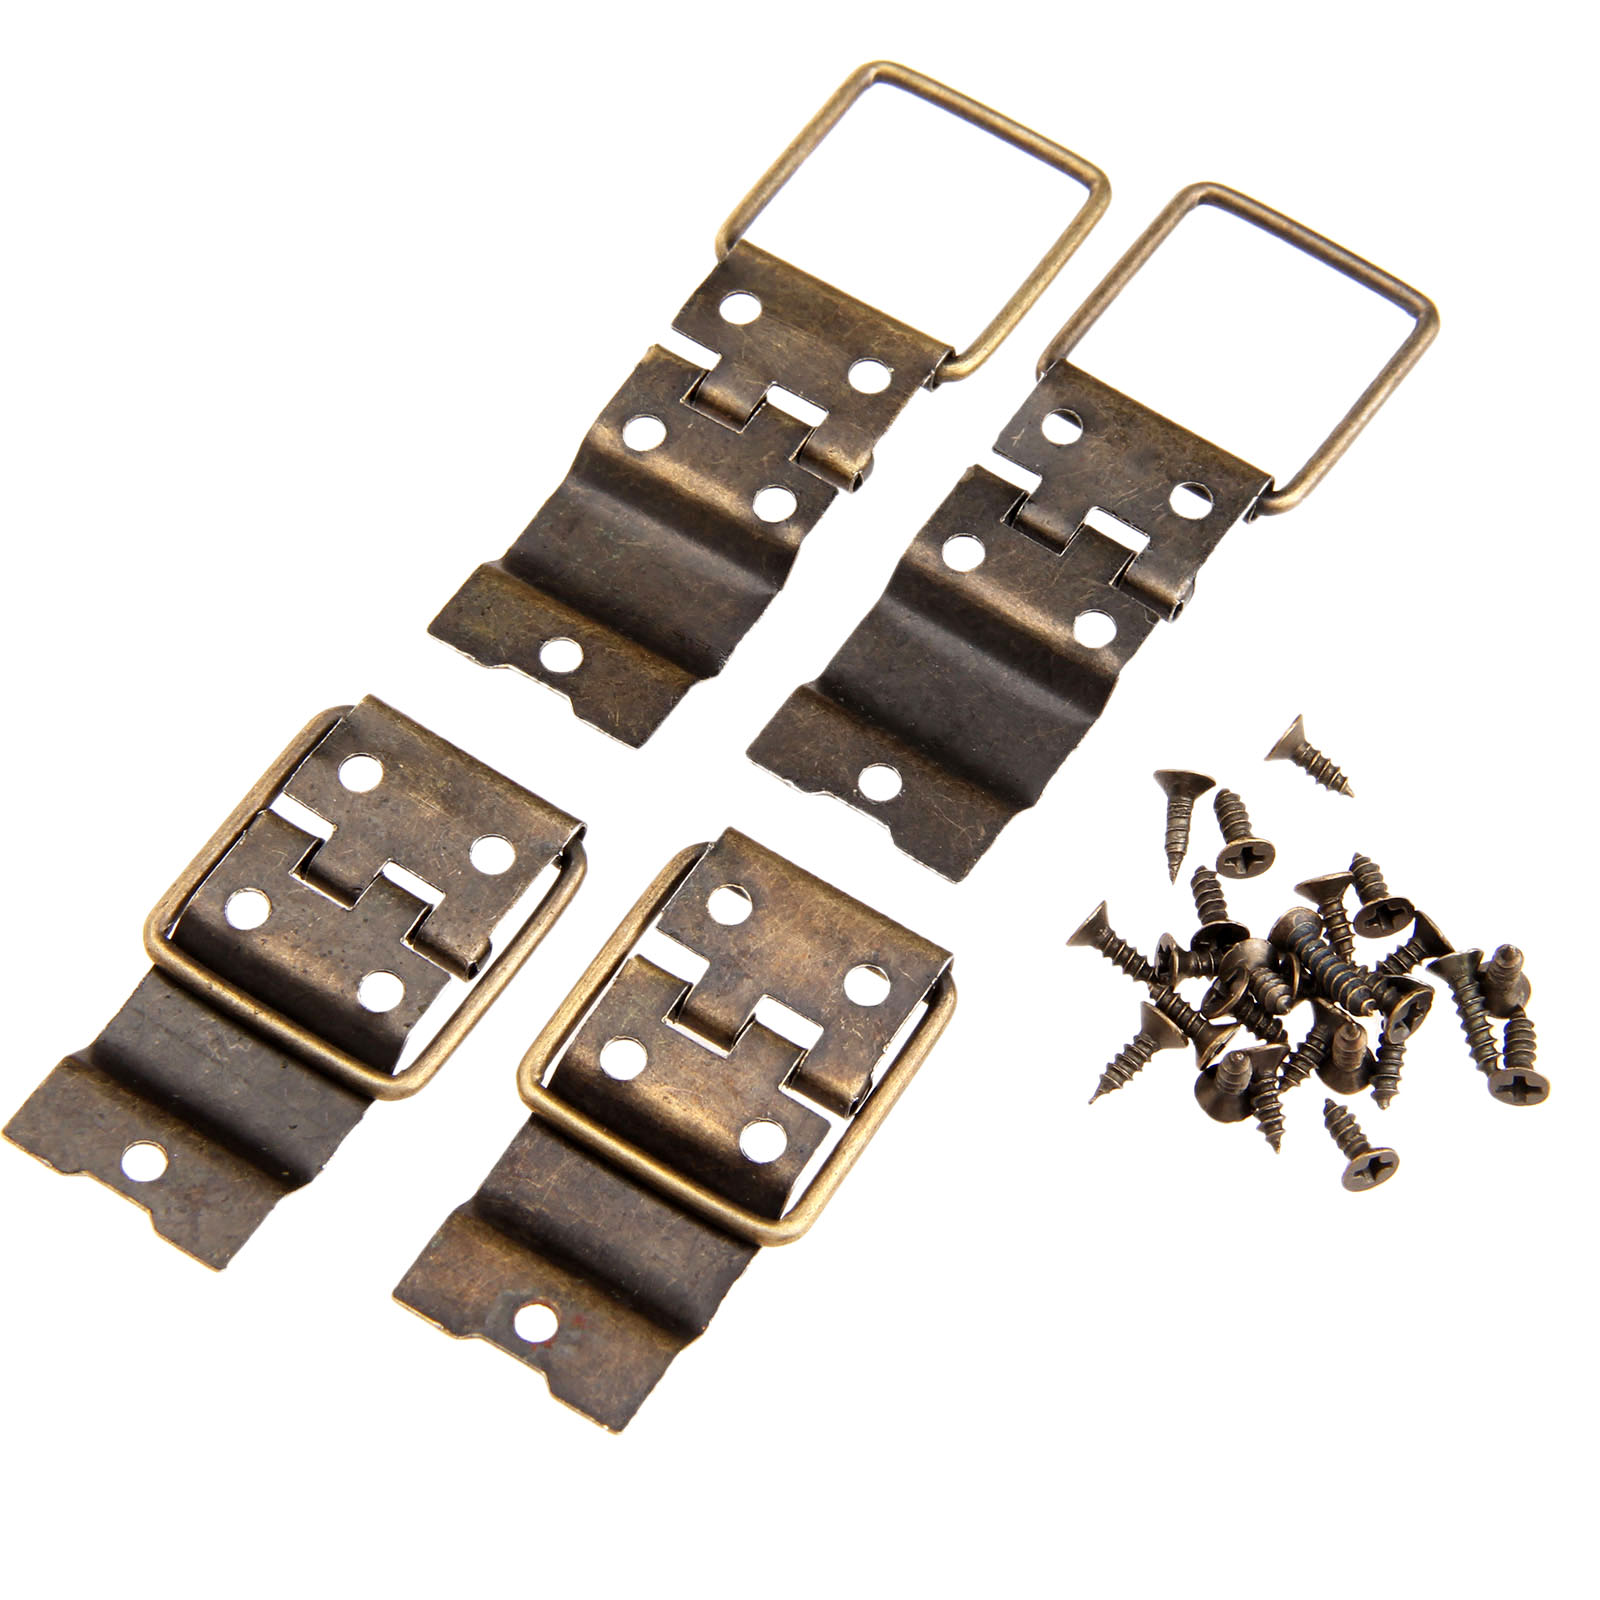 4Pcs Antique Furniture Cabinet Door Hinges Drawer Jewellery Box Hinge Printing Packaging Jewelry Box DIY Accessories 38x21mm